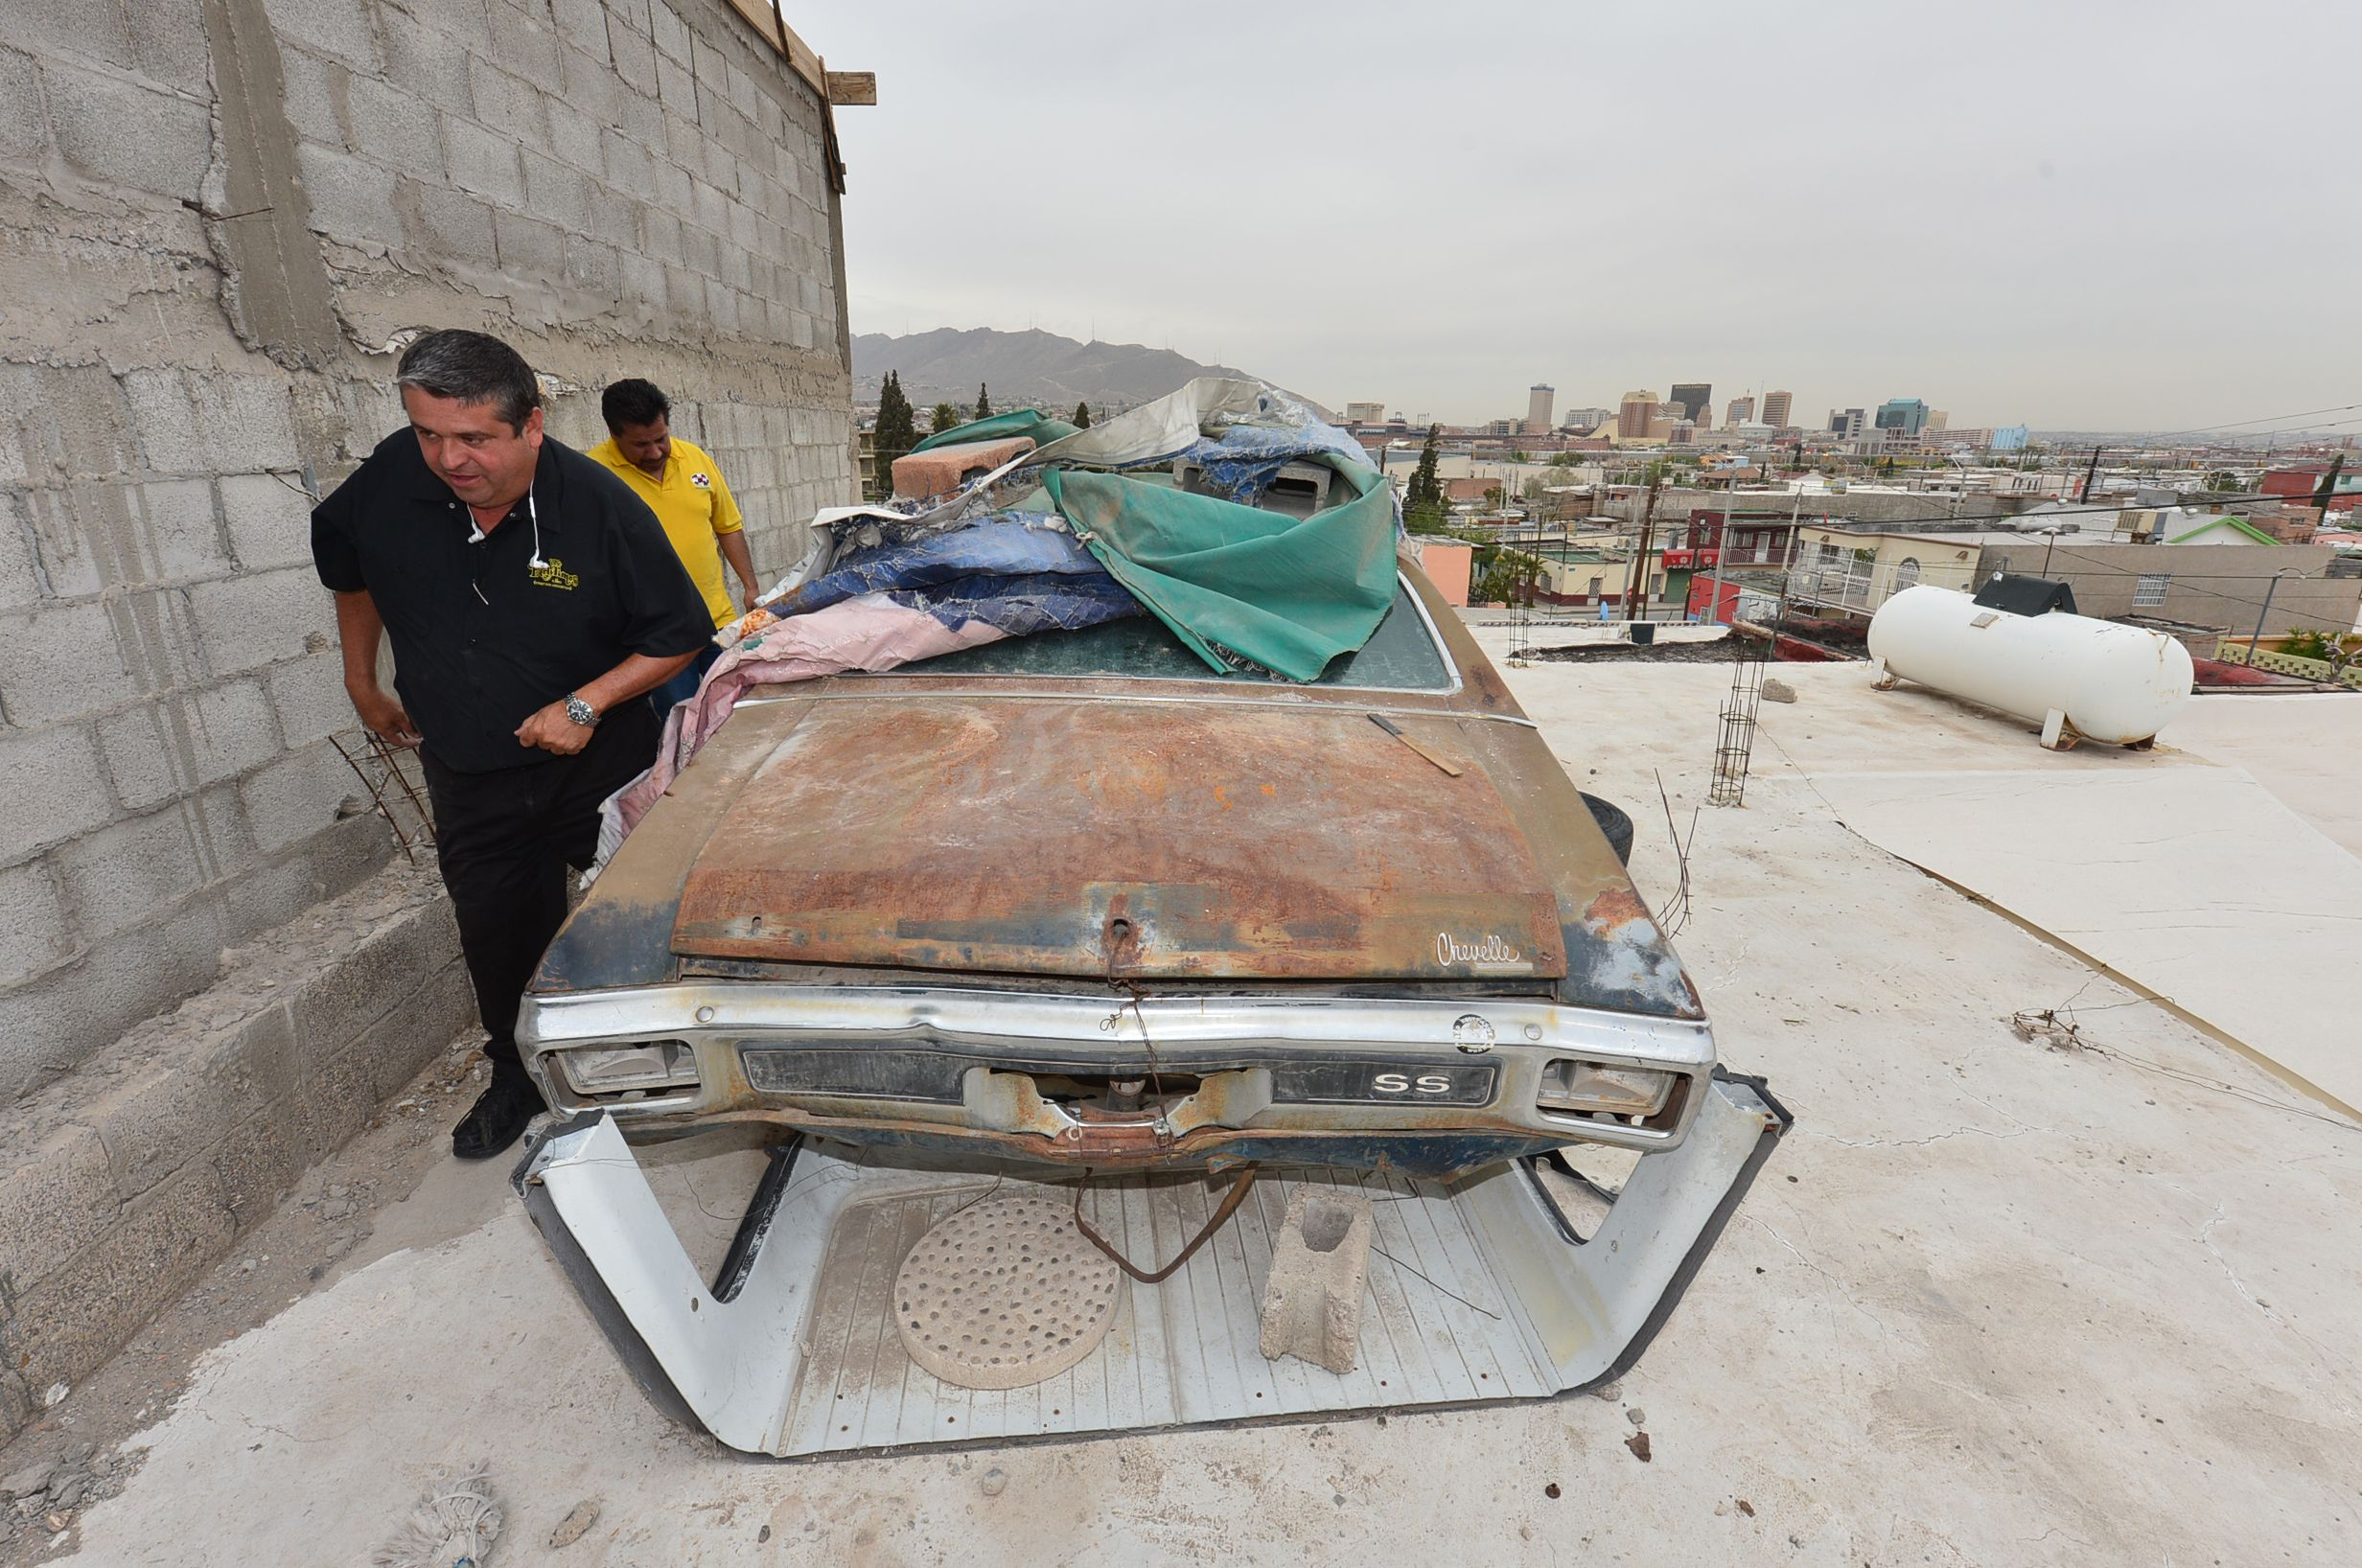 1970 Chevrolet CHEVELLE SS396 Placed On A ROOFTOP In MEXICO 5